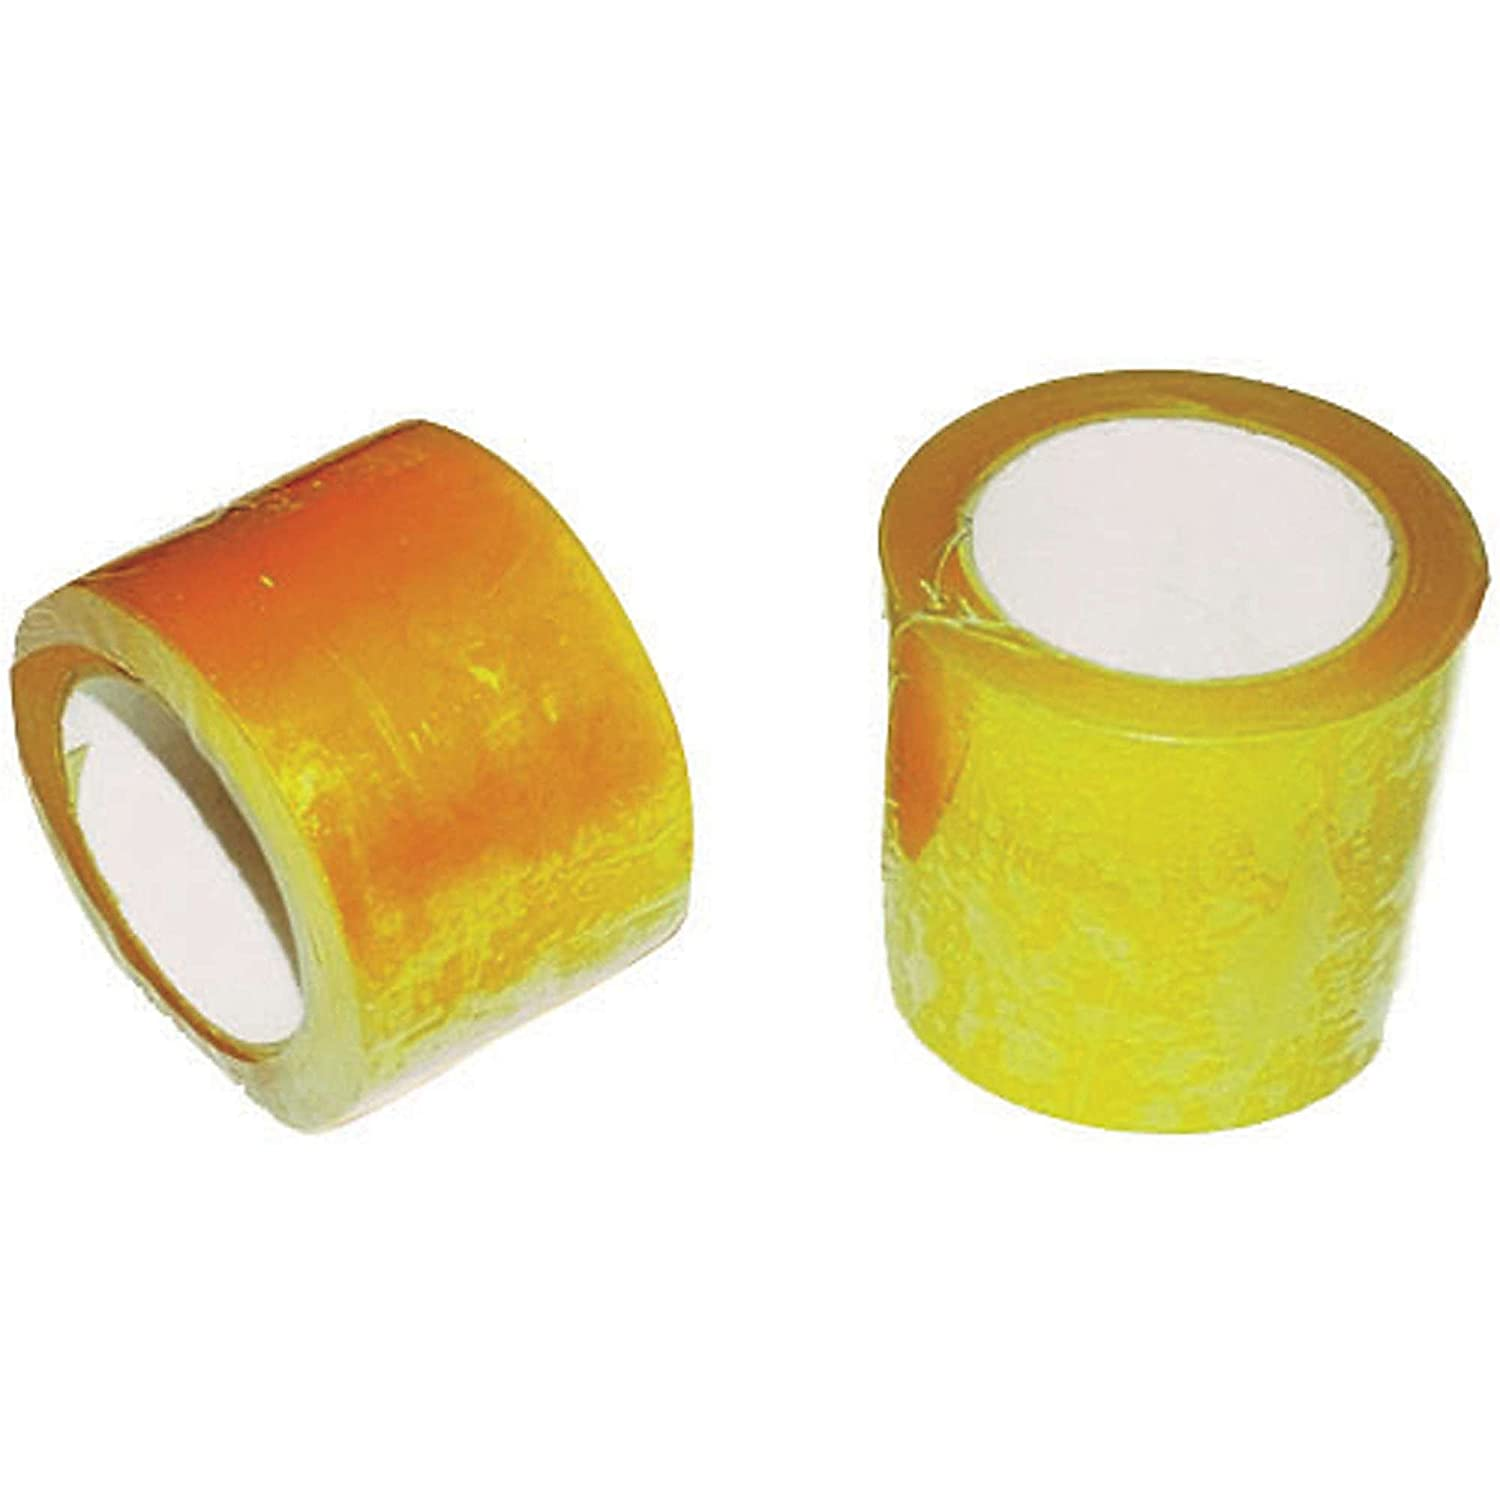 six rolls s of mats picture vinyl mat clear better works matman tape m p pack inch wrestling